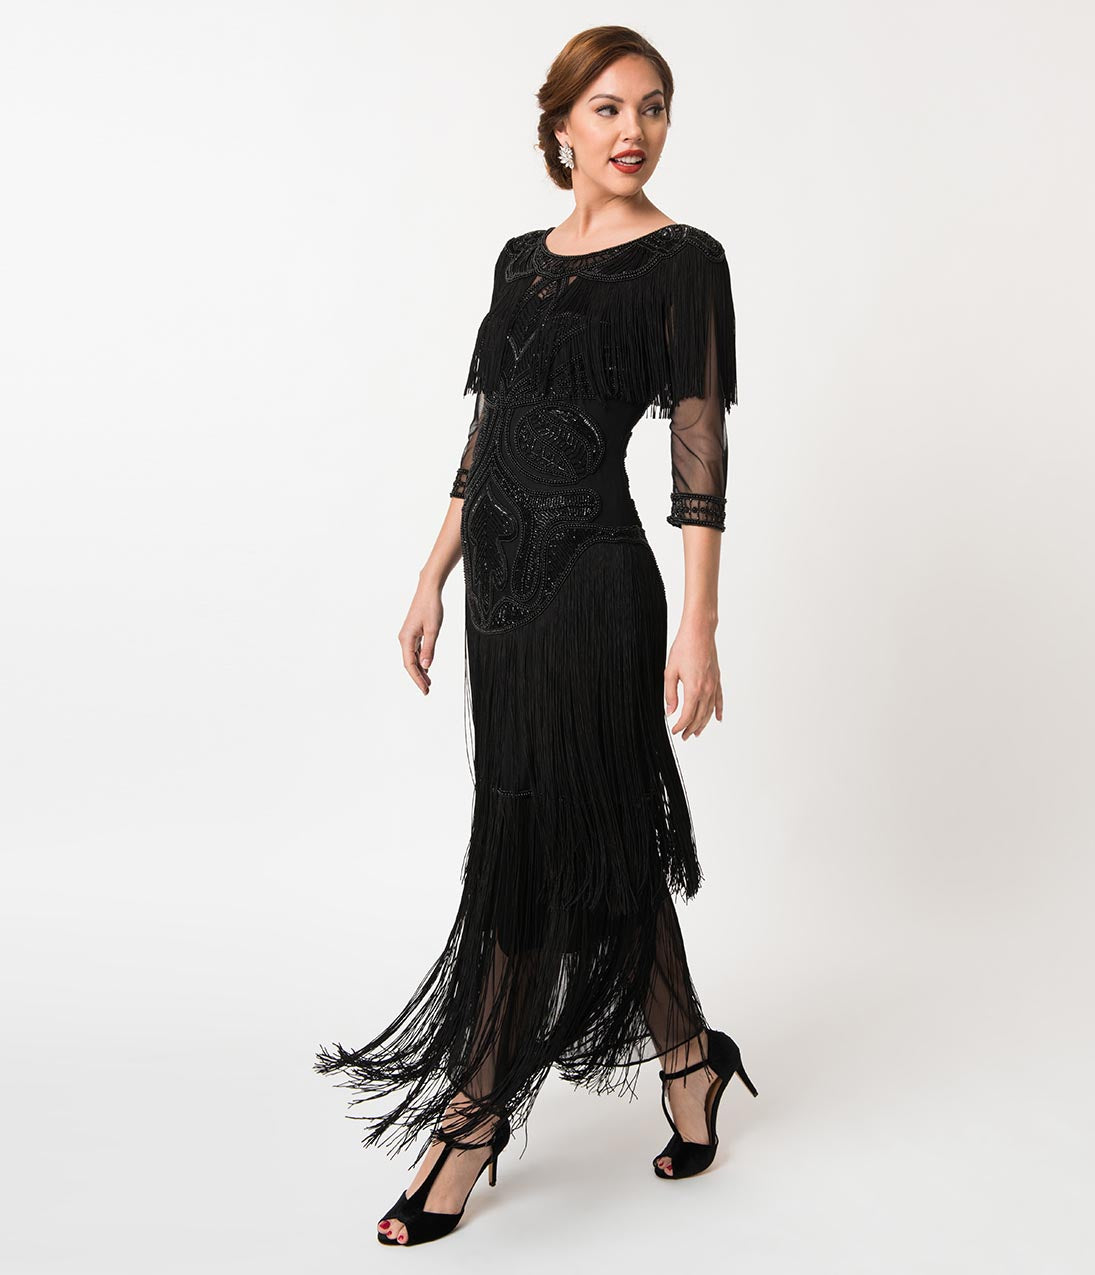 1920s Evening Dresses & Formal Gowns 1920S Style Black Beaded Mesh Glam Fringe Flapper Maxi Gown $248.00 AT vintagedancer.com